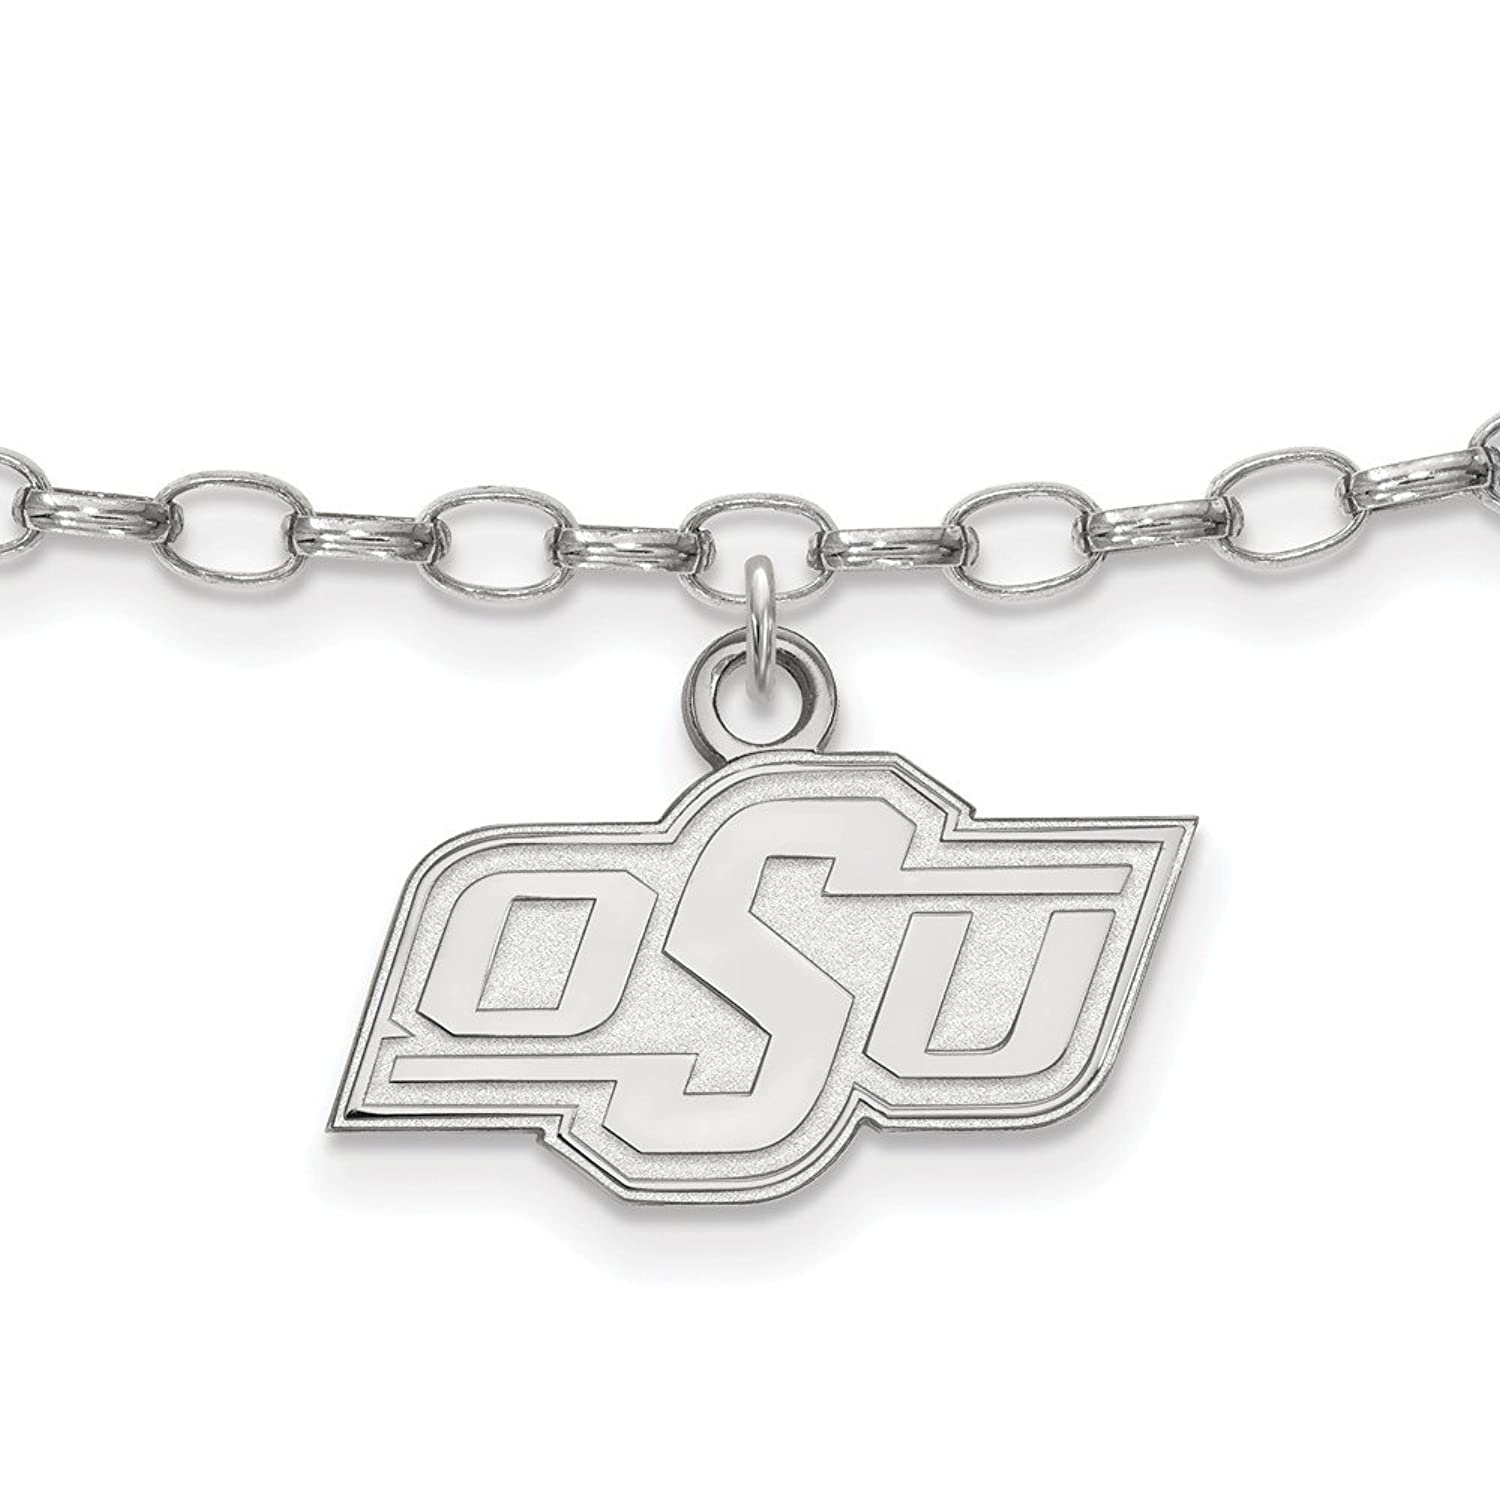 Solid 925 Sterling Silver Oklahoma State University Anklet - with Secure Lobster Lock Clasp (18mm)